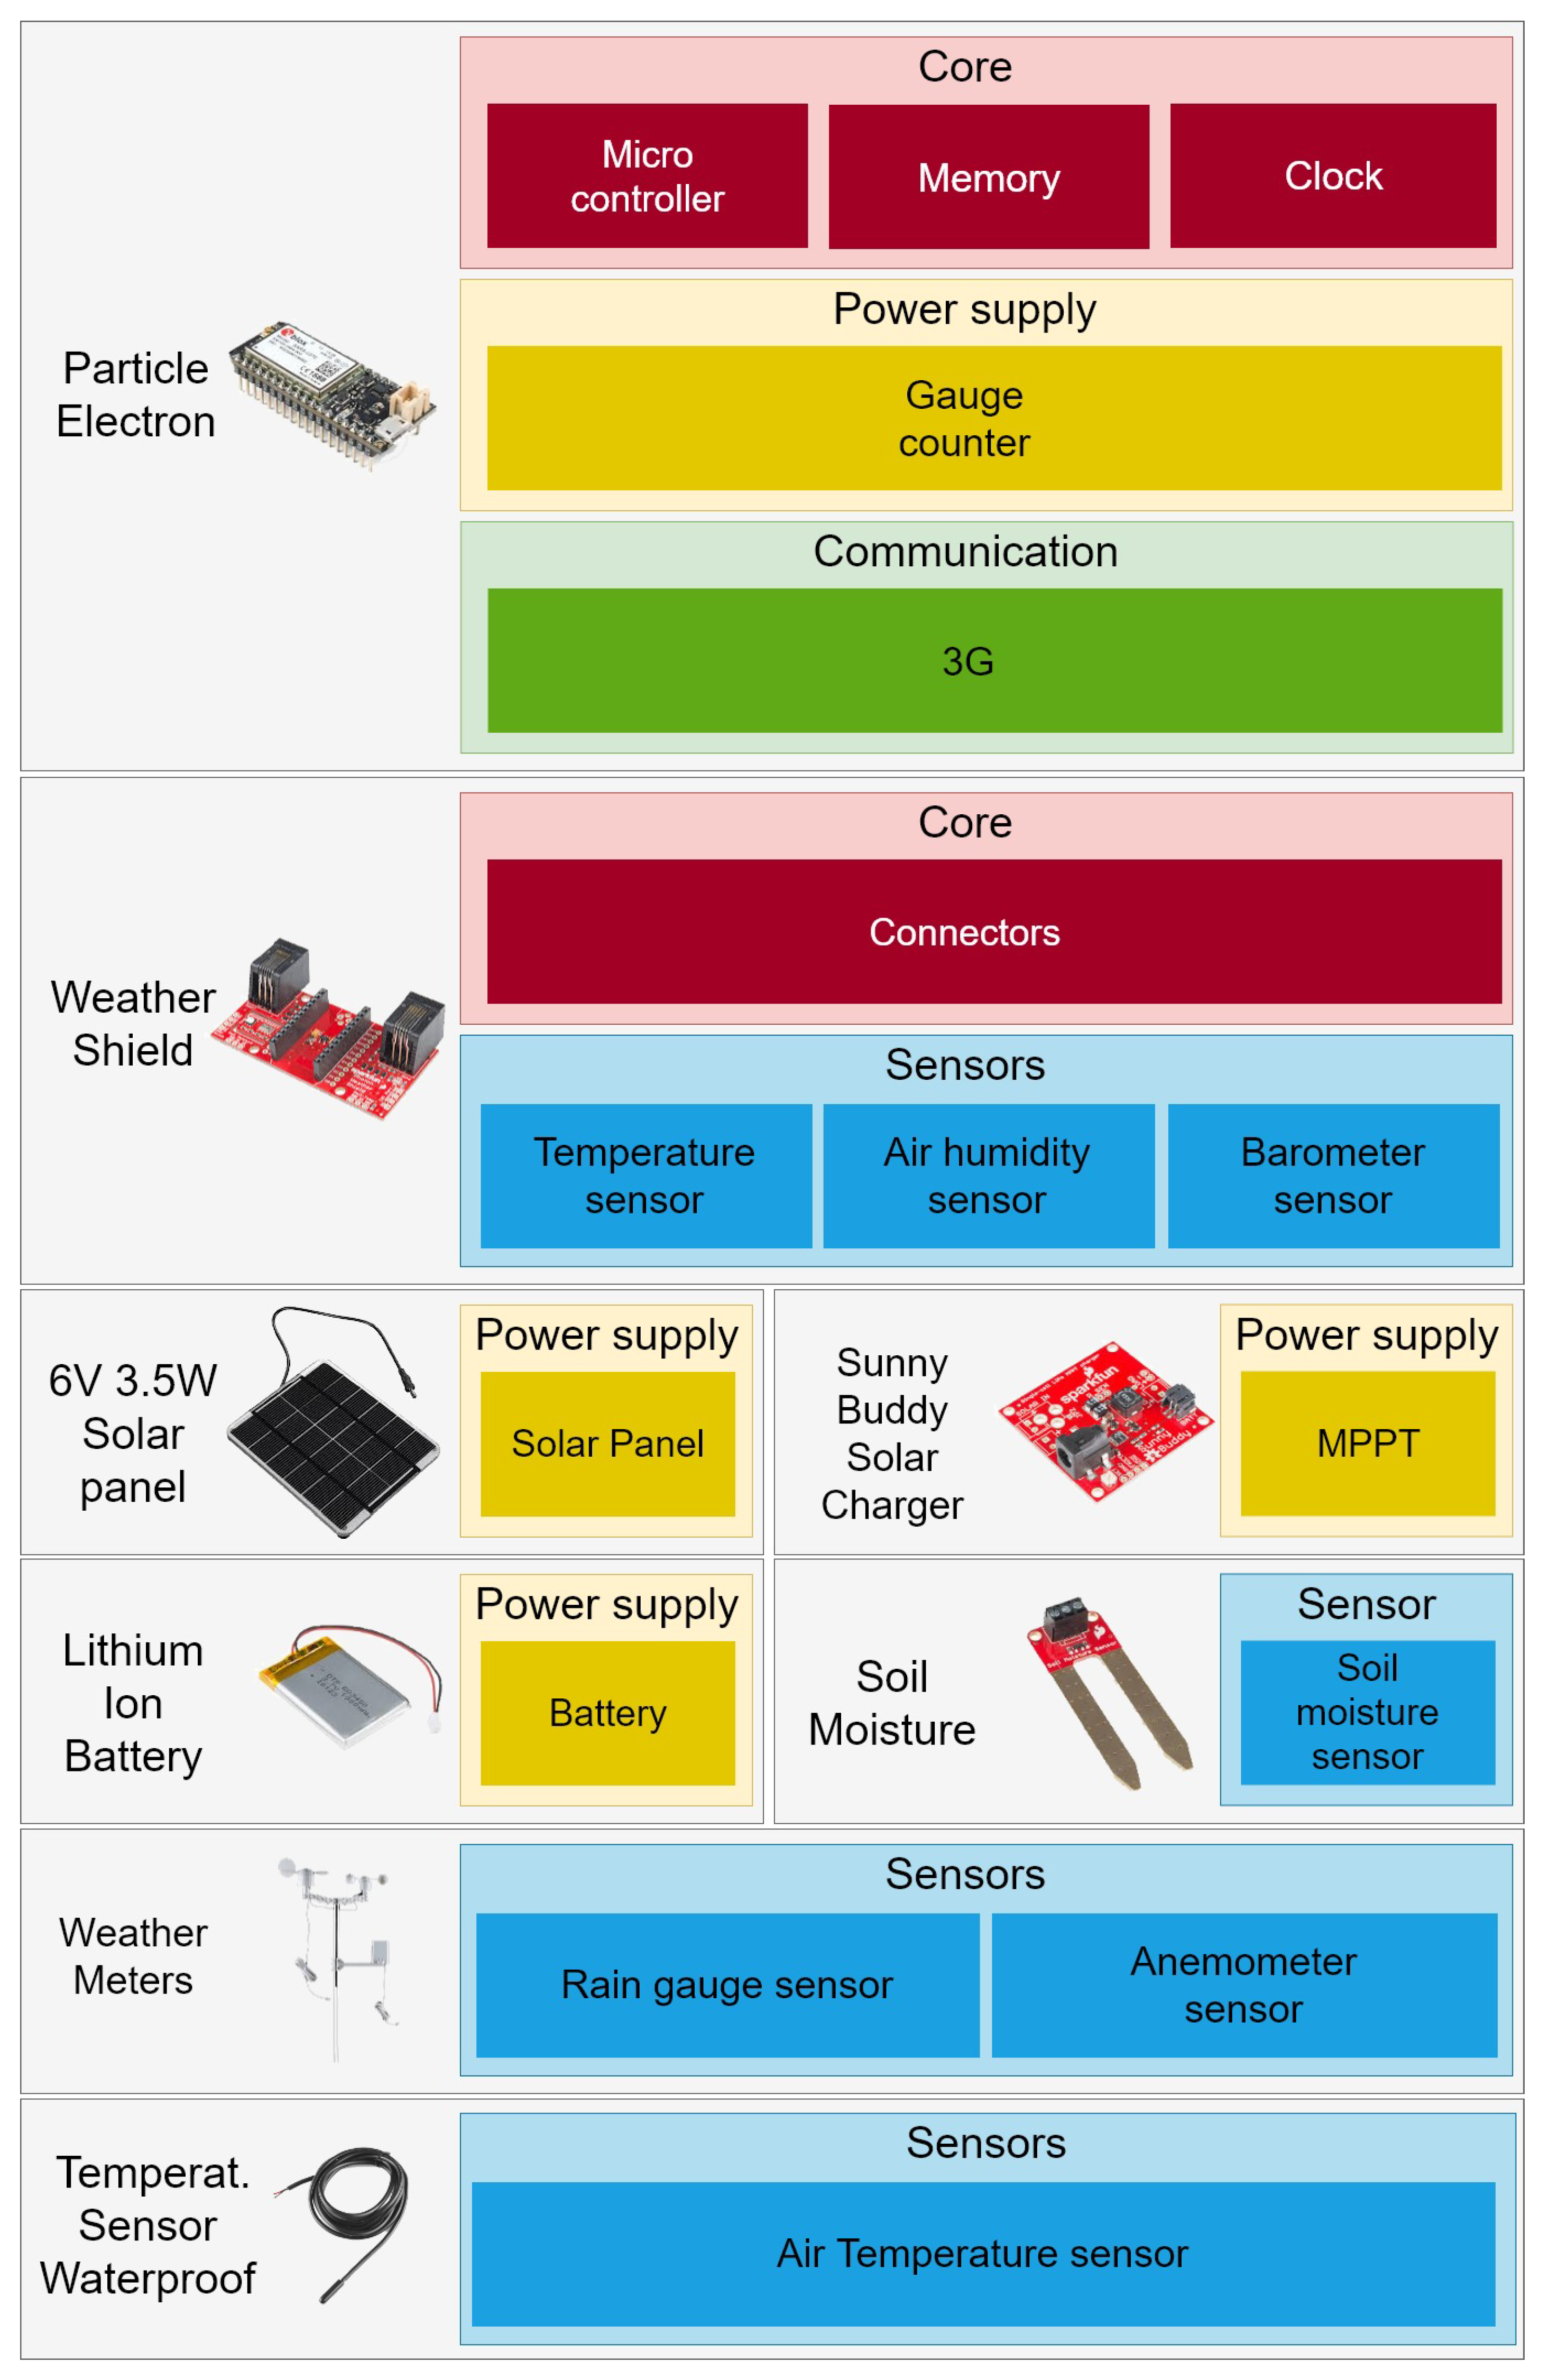 Electronics Free Full Text A Comprehensive Iot Node Proposal Rj11 Wiring Diagram On Additional Views Showing Telephone Pinout 07 00419 G004